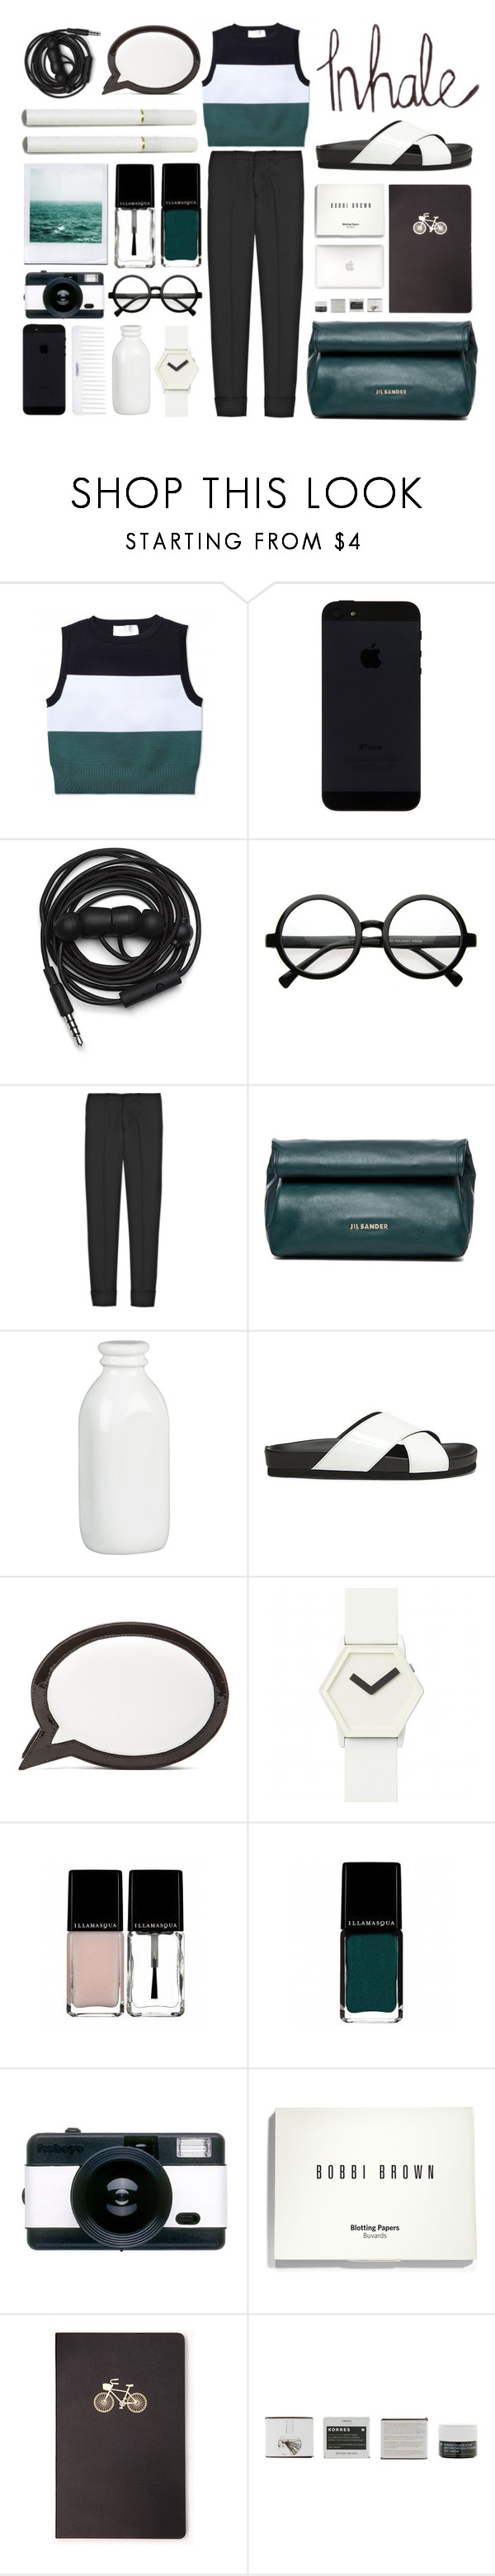 """3PerfectColors."" by mhurtiz ❤ liked on Polyvore featuring A.L.C., Urbanears, Retrò, Miu Miu, Jil Sander, Conair, Crate and Barrel, Steve Madden, Sophia Webster and IDEA International"